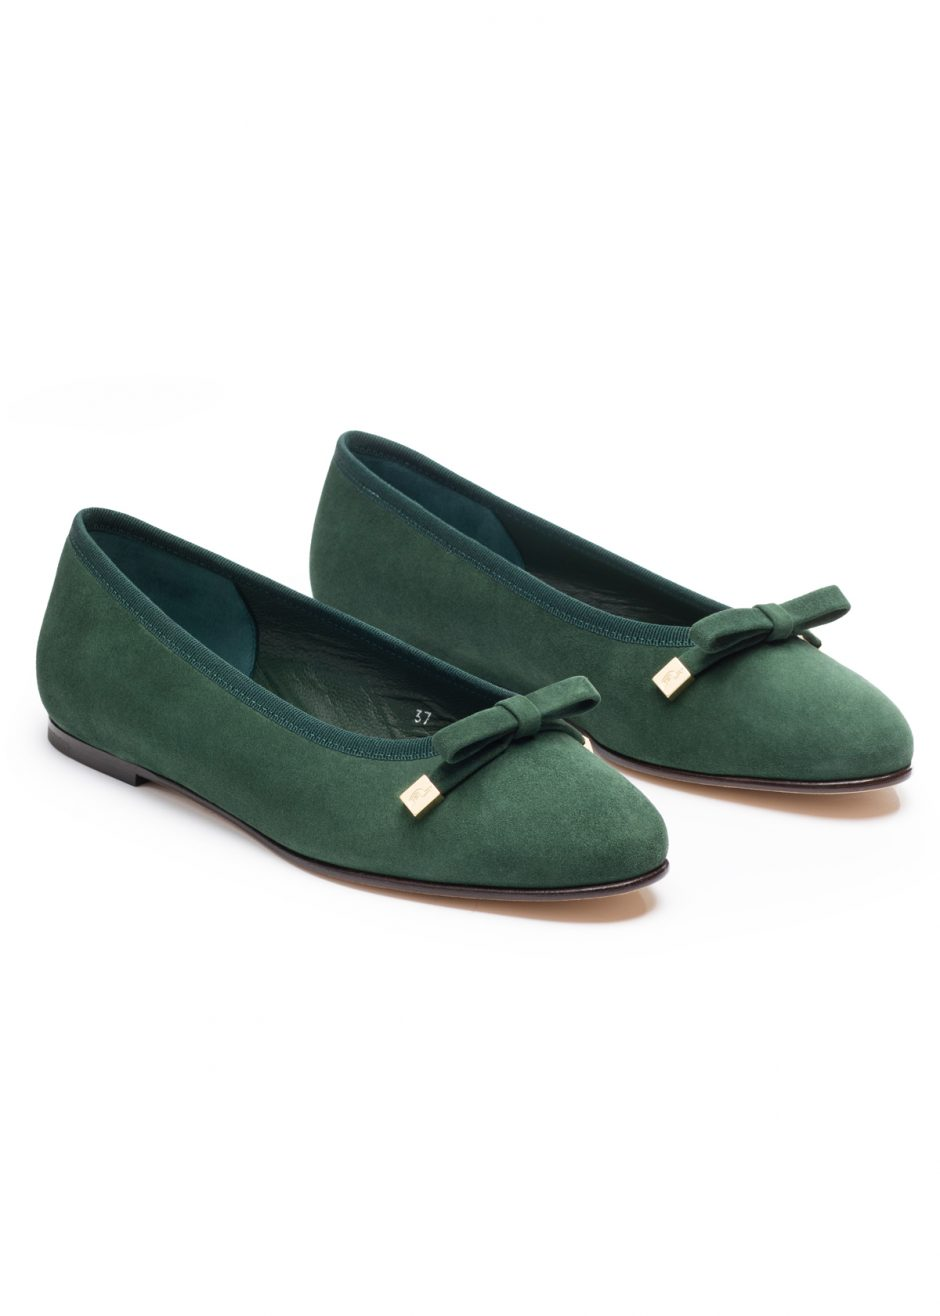 Audrey – Ballet flat green kidskin suede with suede bow